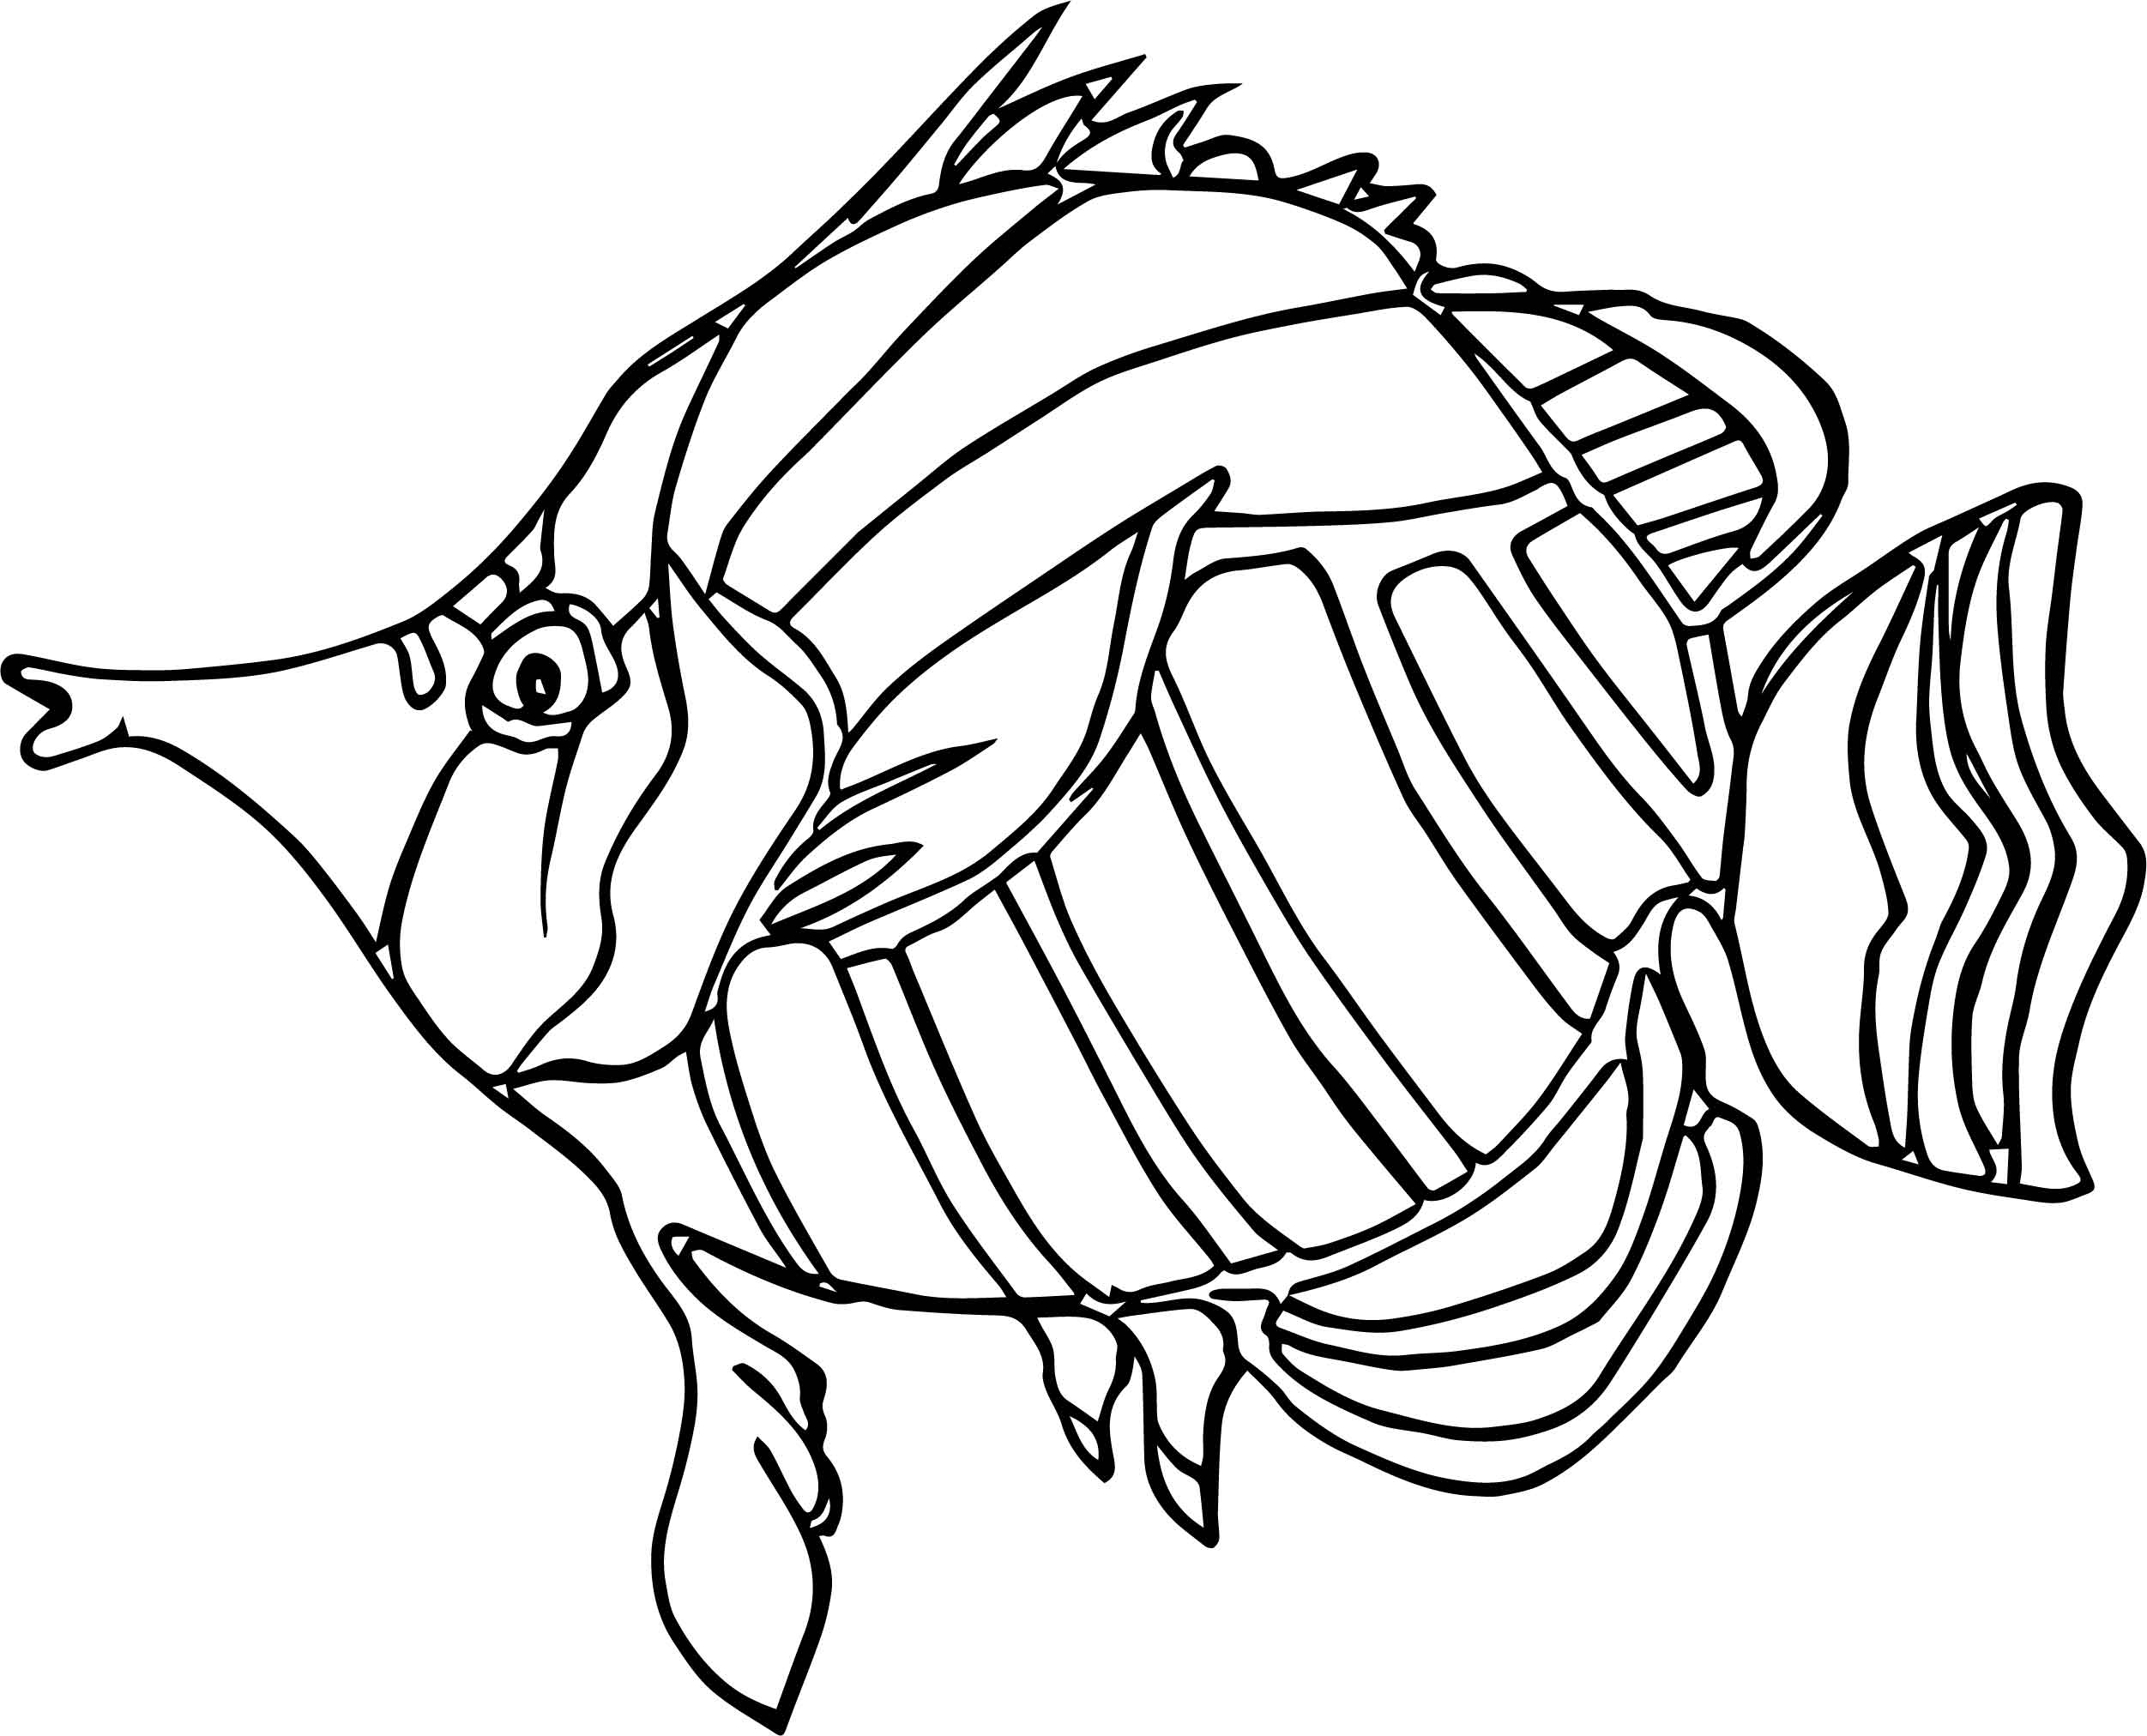 angel fish coloring page nice coloring pages at getcoloringscom free printable coloring page fish angel